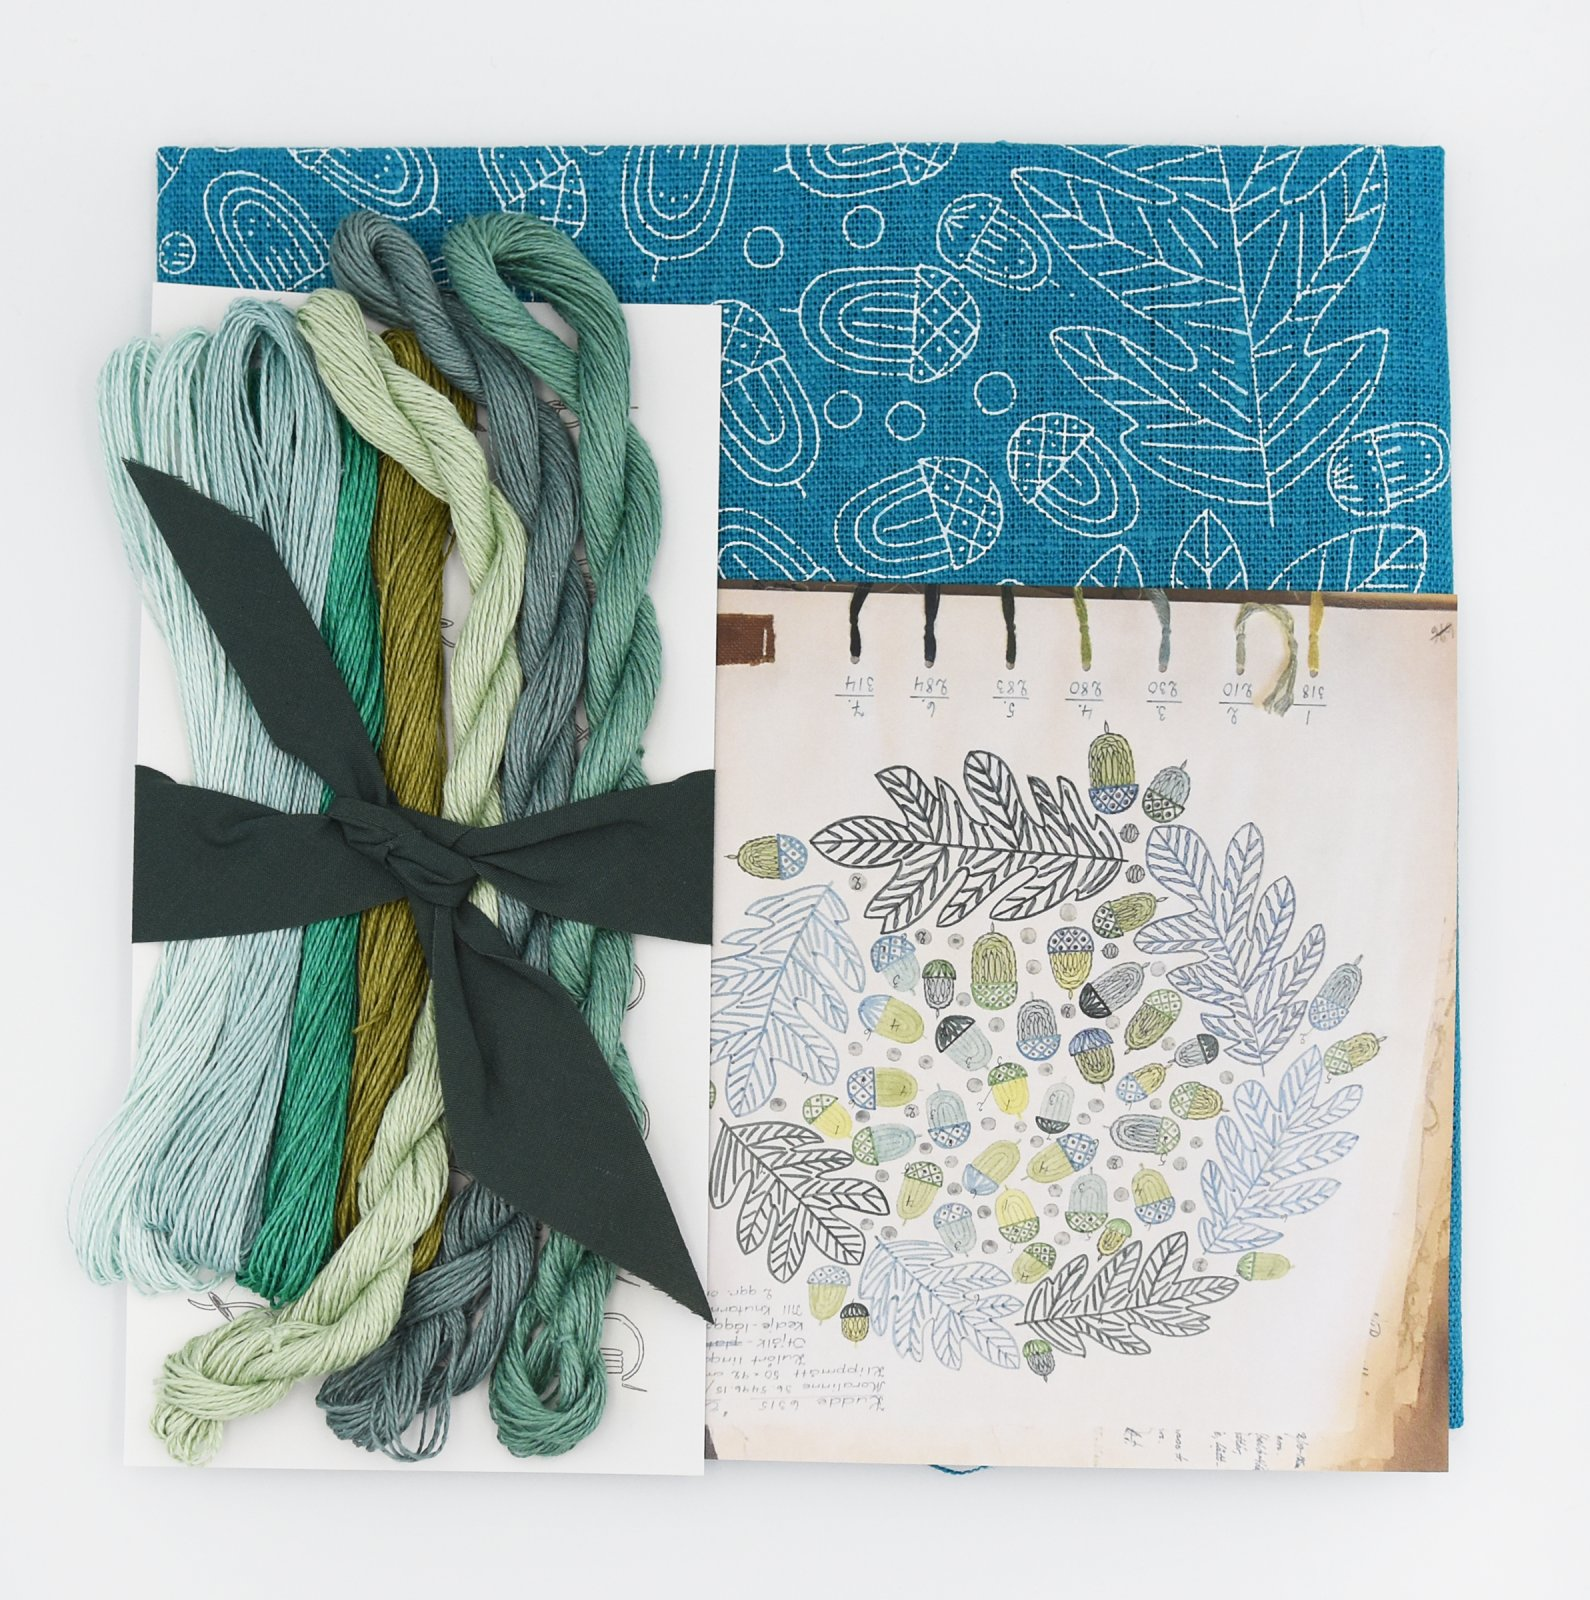 Linladan - Teal Acorn - Nordiska print with linen threads